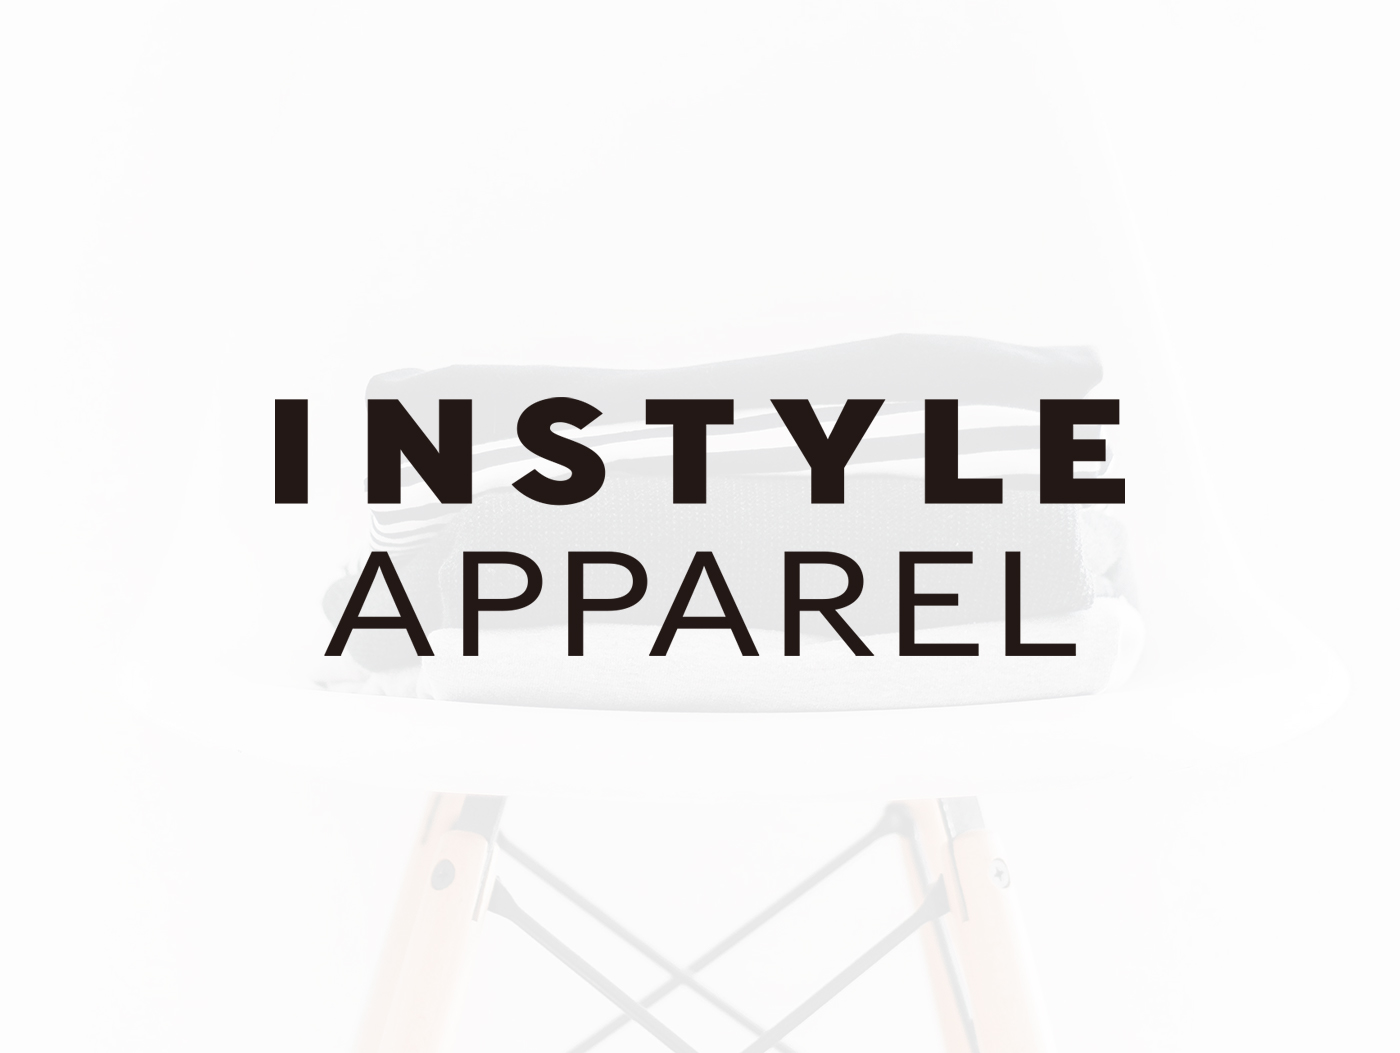 instyle group インスタイルグループ instyle apparel